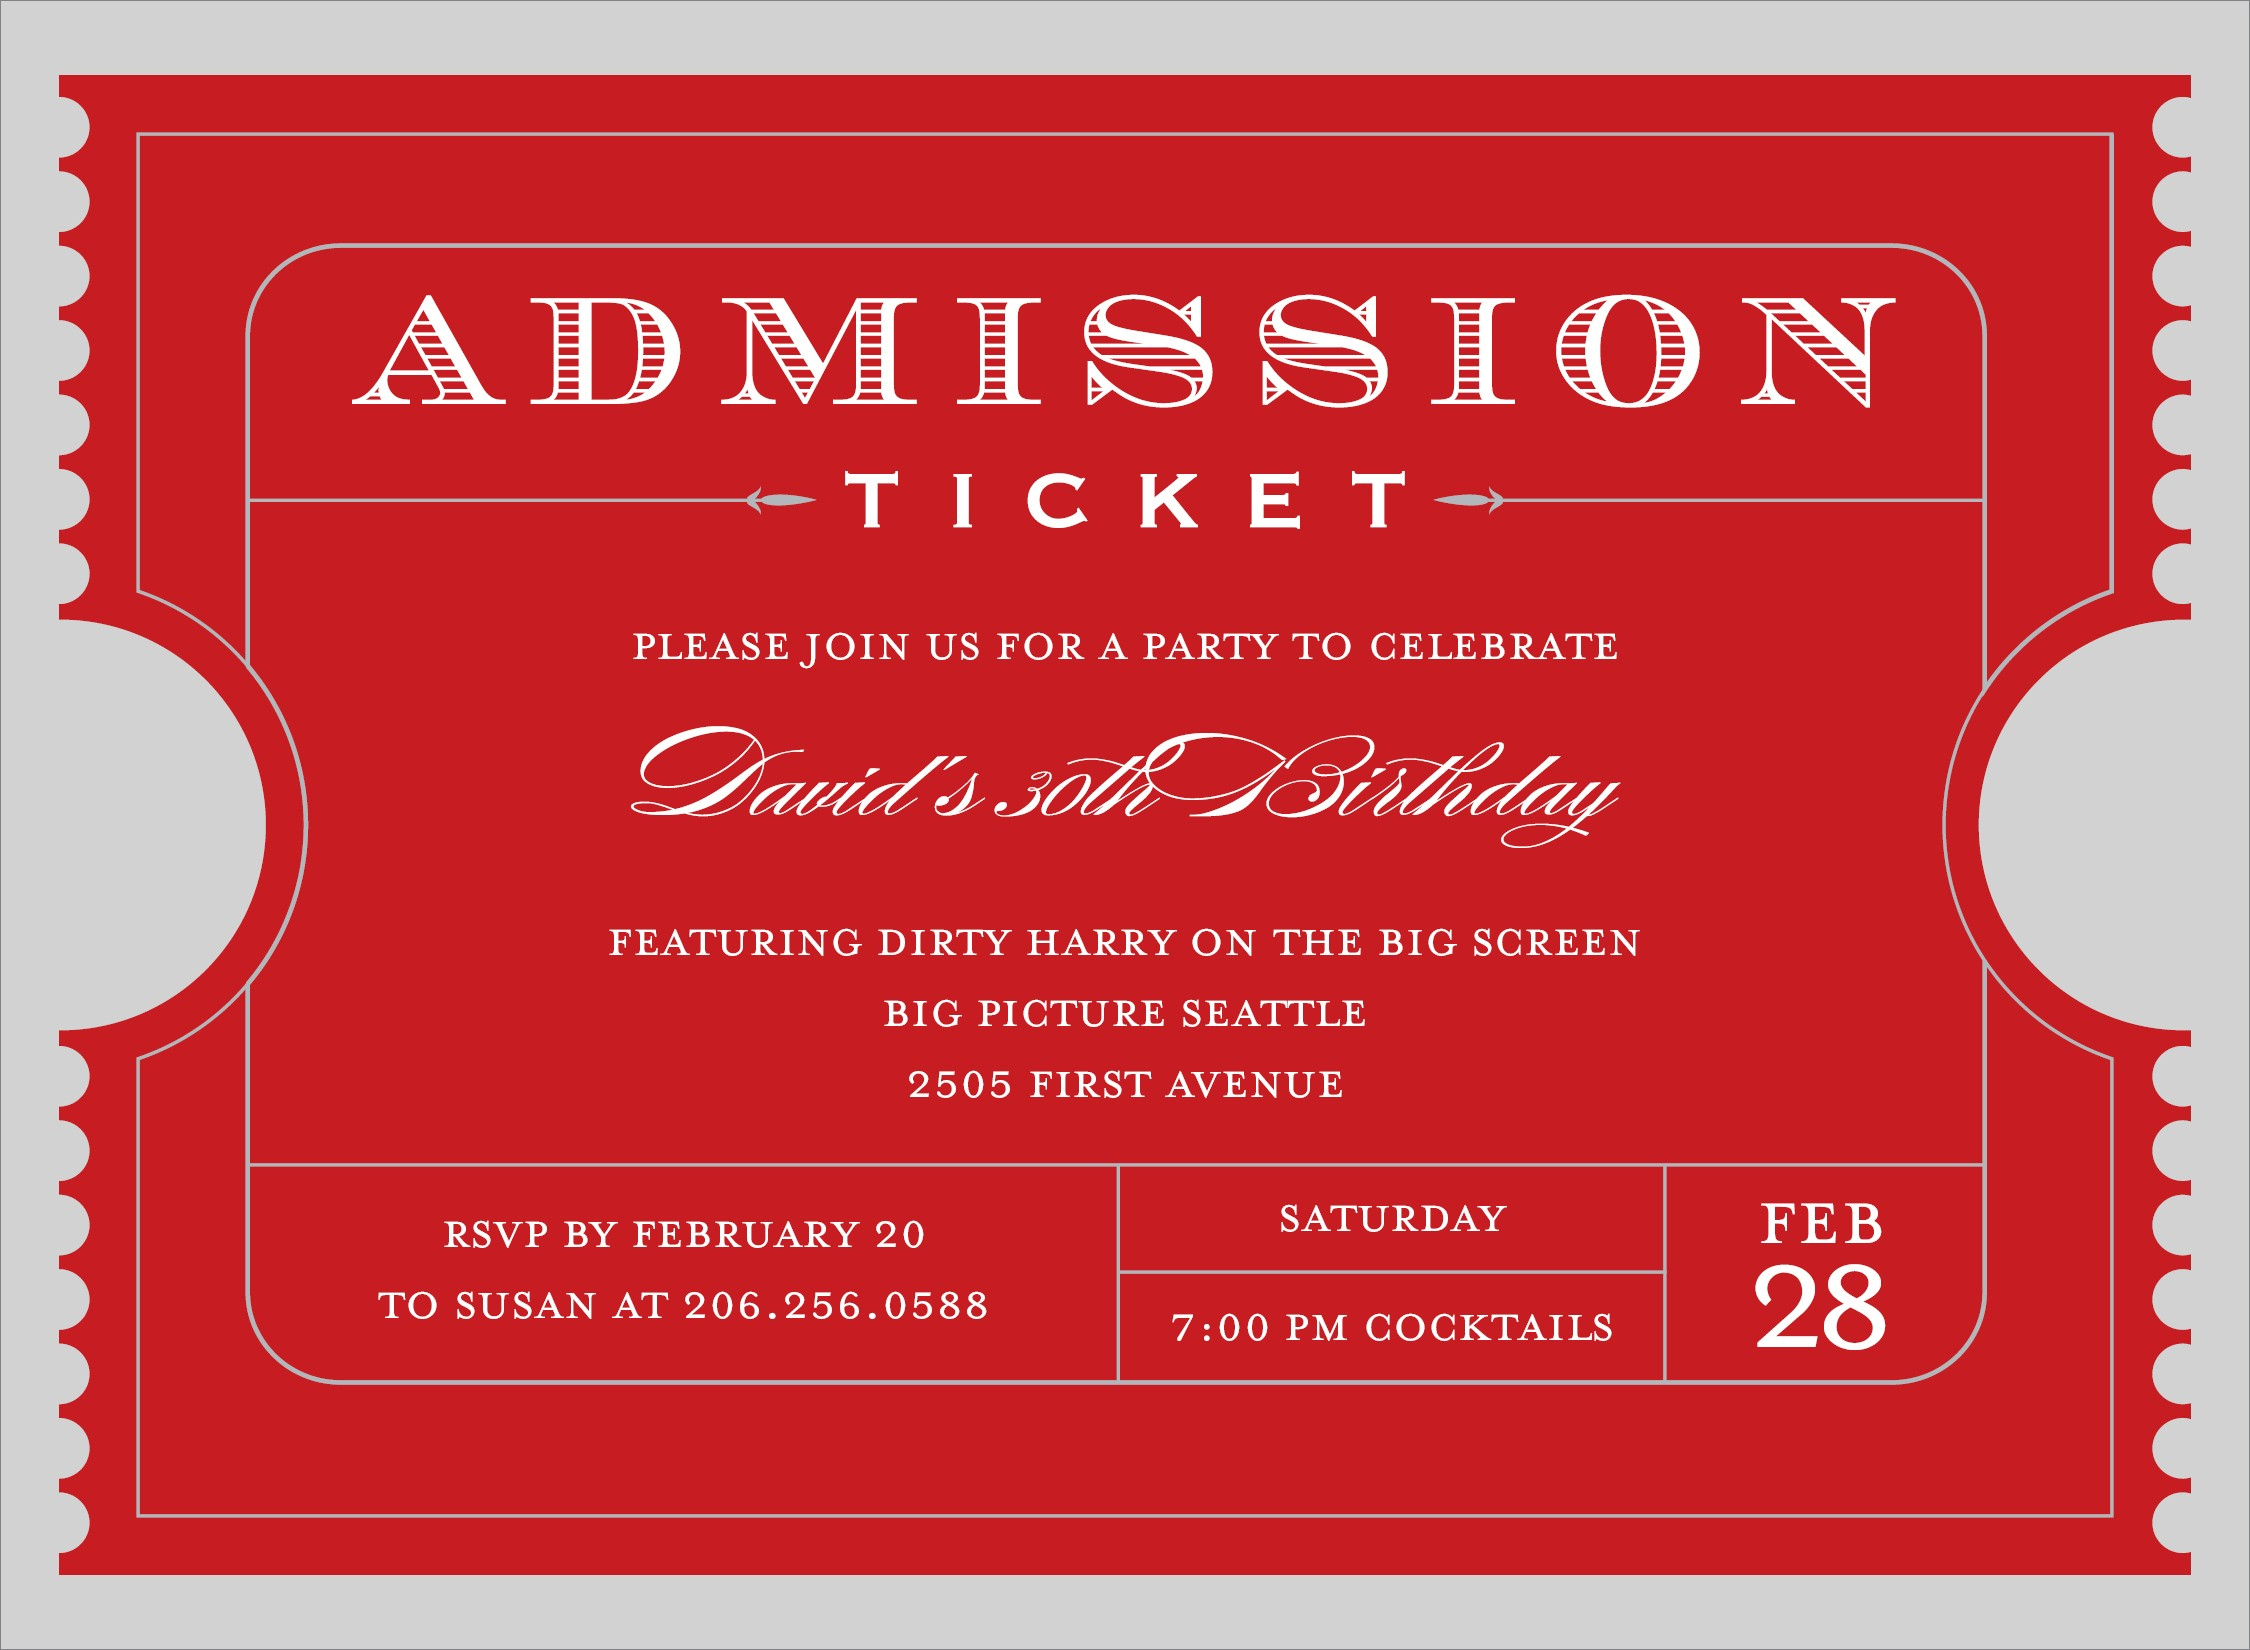 025 Free Printable Event Tickets Template Admission Ticket Download - Free Printable Admission Ticket Template